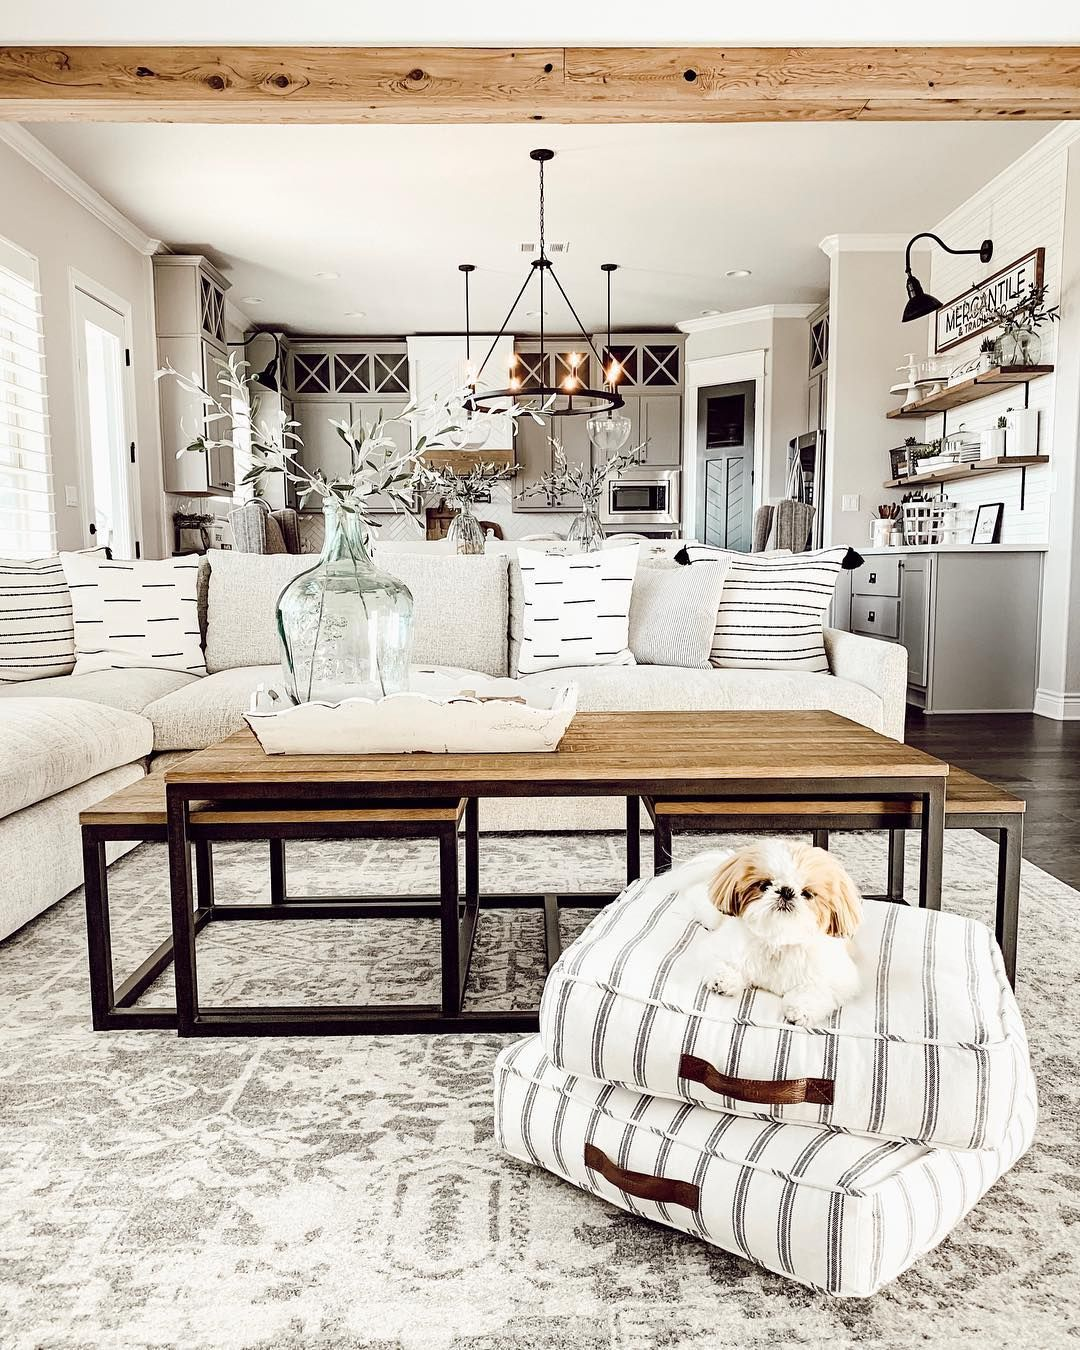 Holly Brad Ourfauxfarmhouse On Instagram King Of His Castle That Modern Farmhouse Living Room Farmhouse Decor Living Room Farm House Living Room